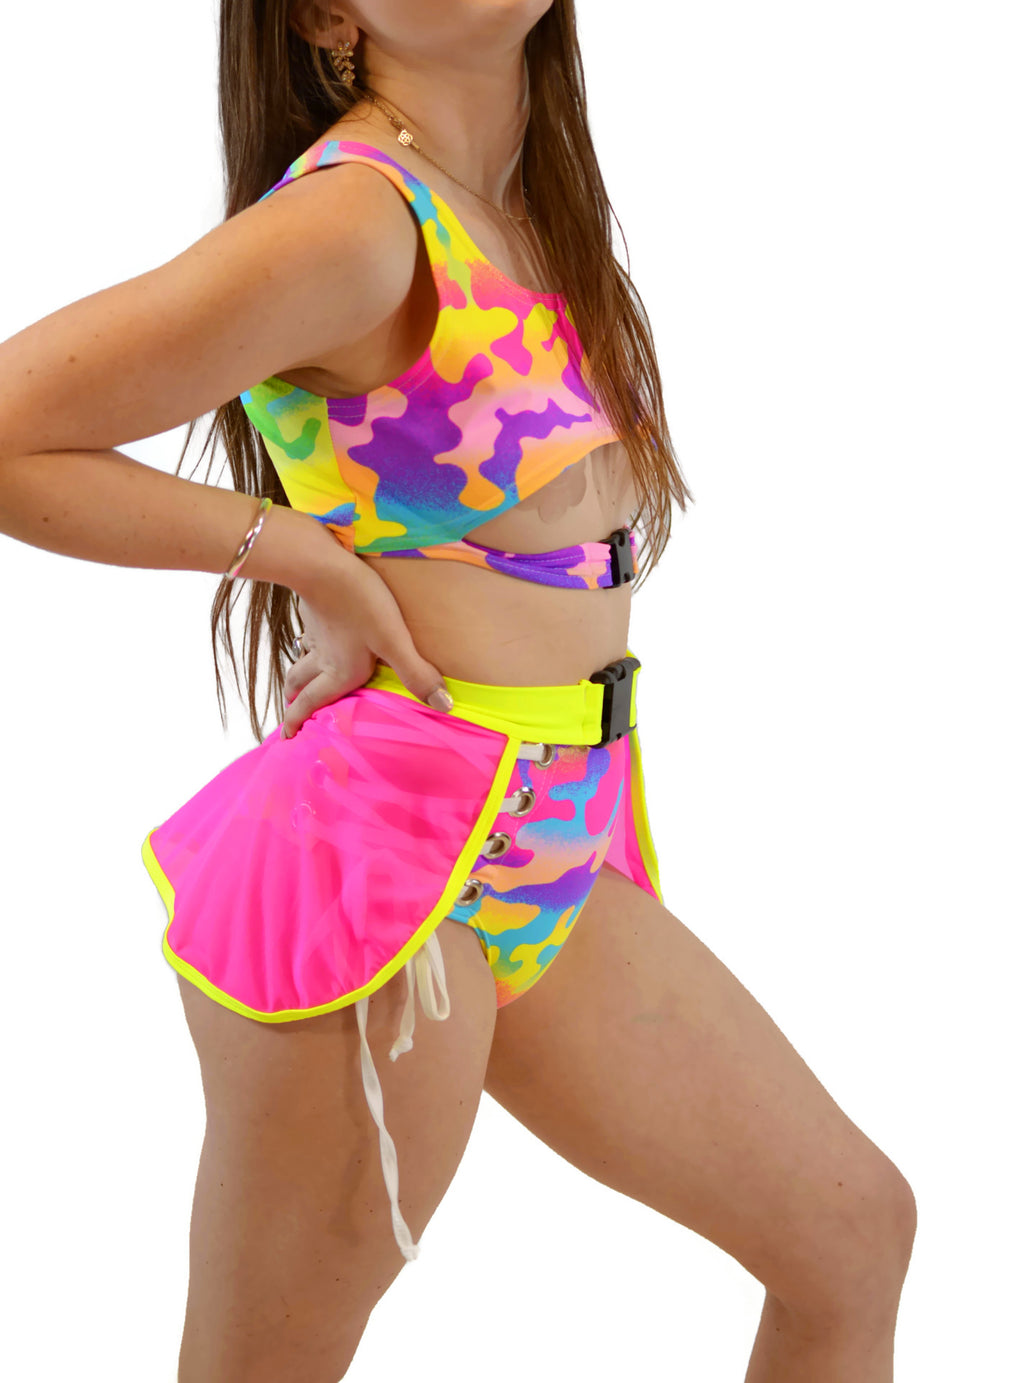 Sin Censura Top - Rainbow Camo - Rolita Couture